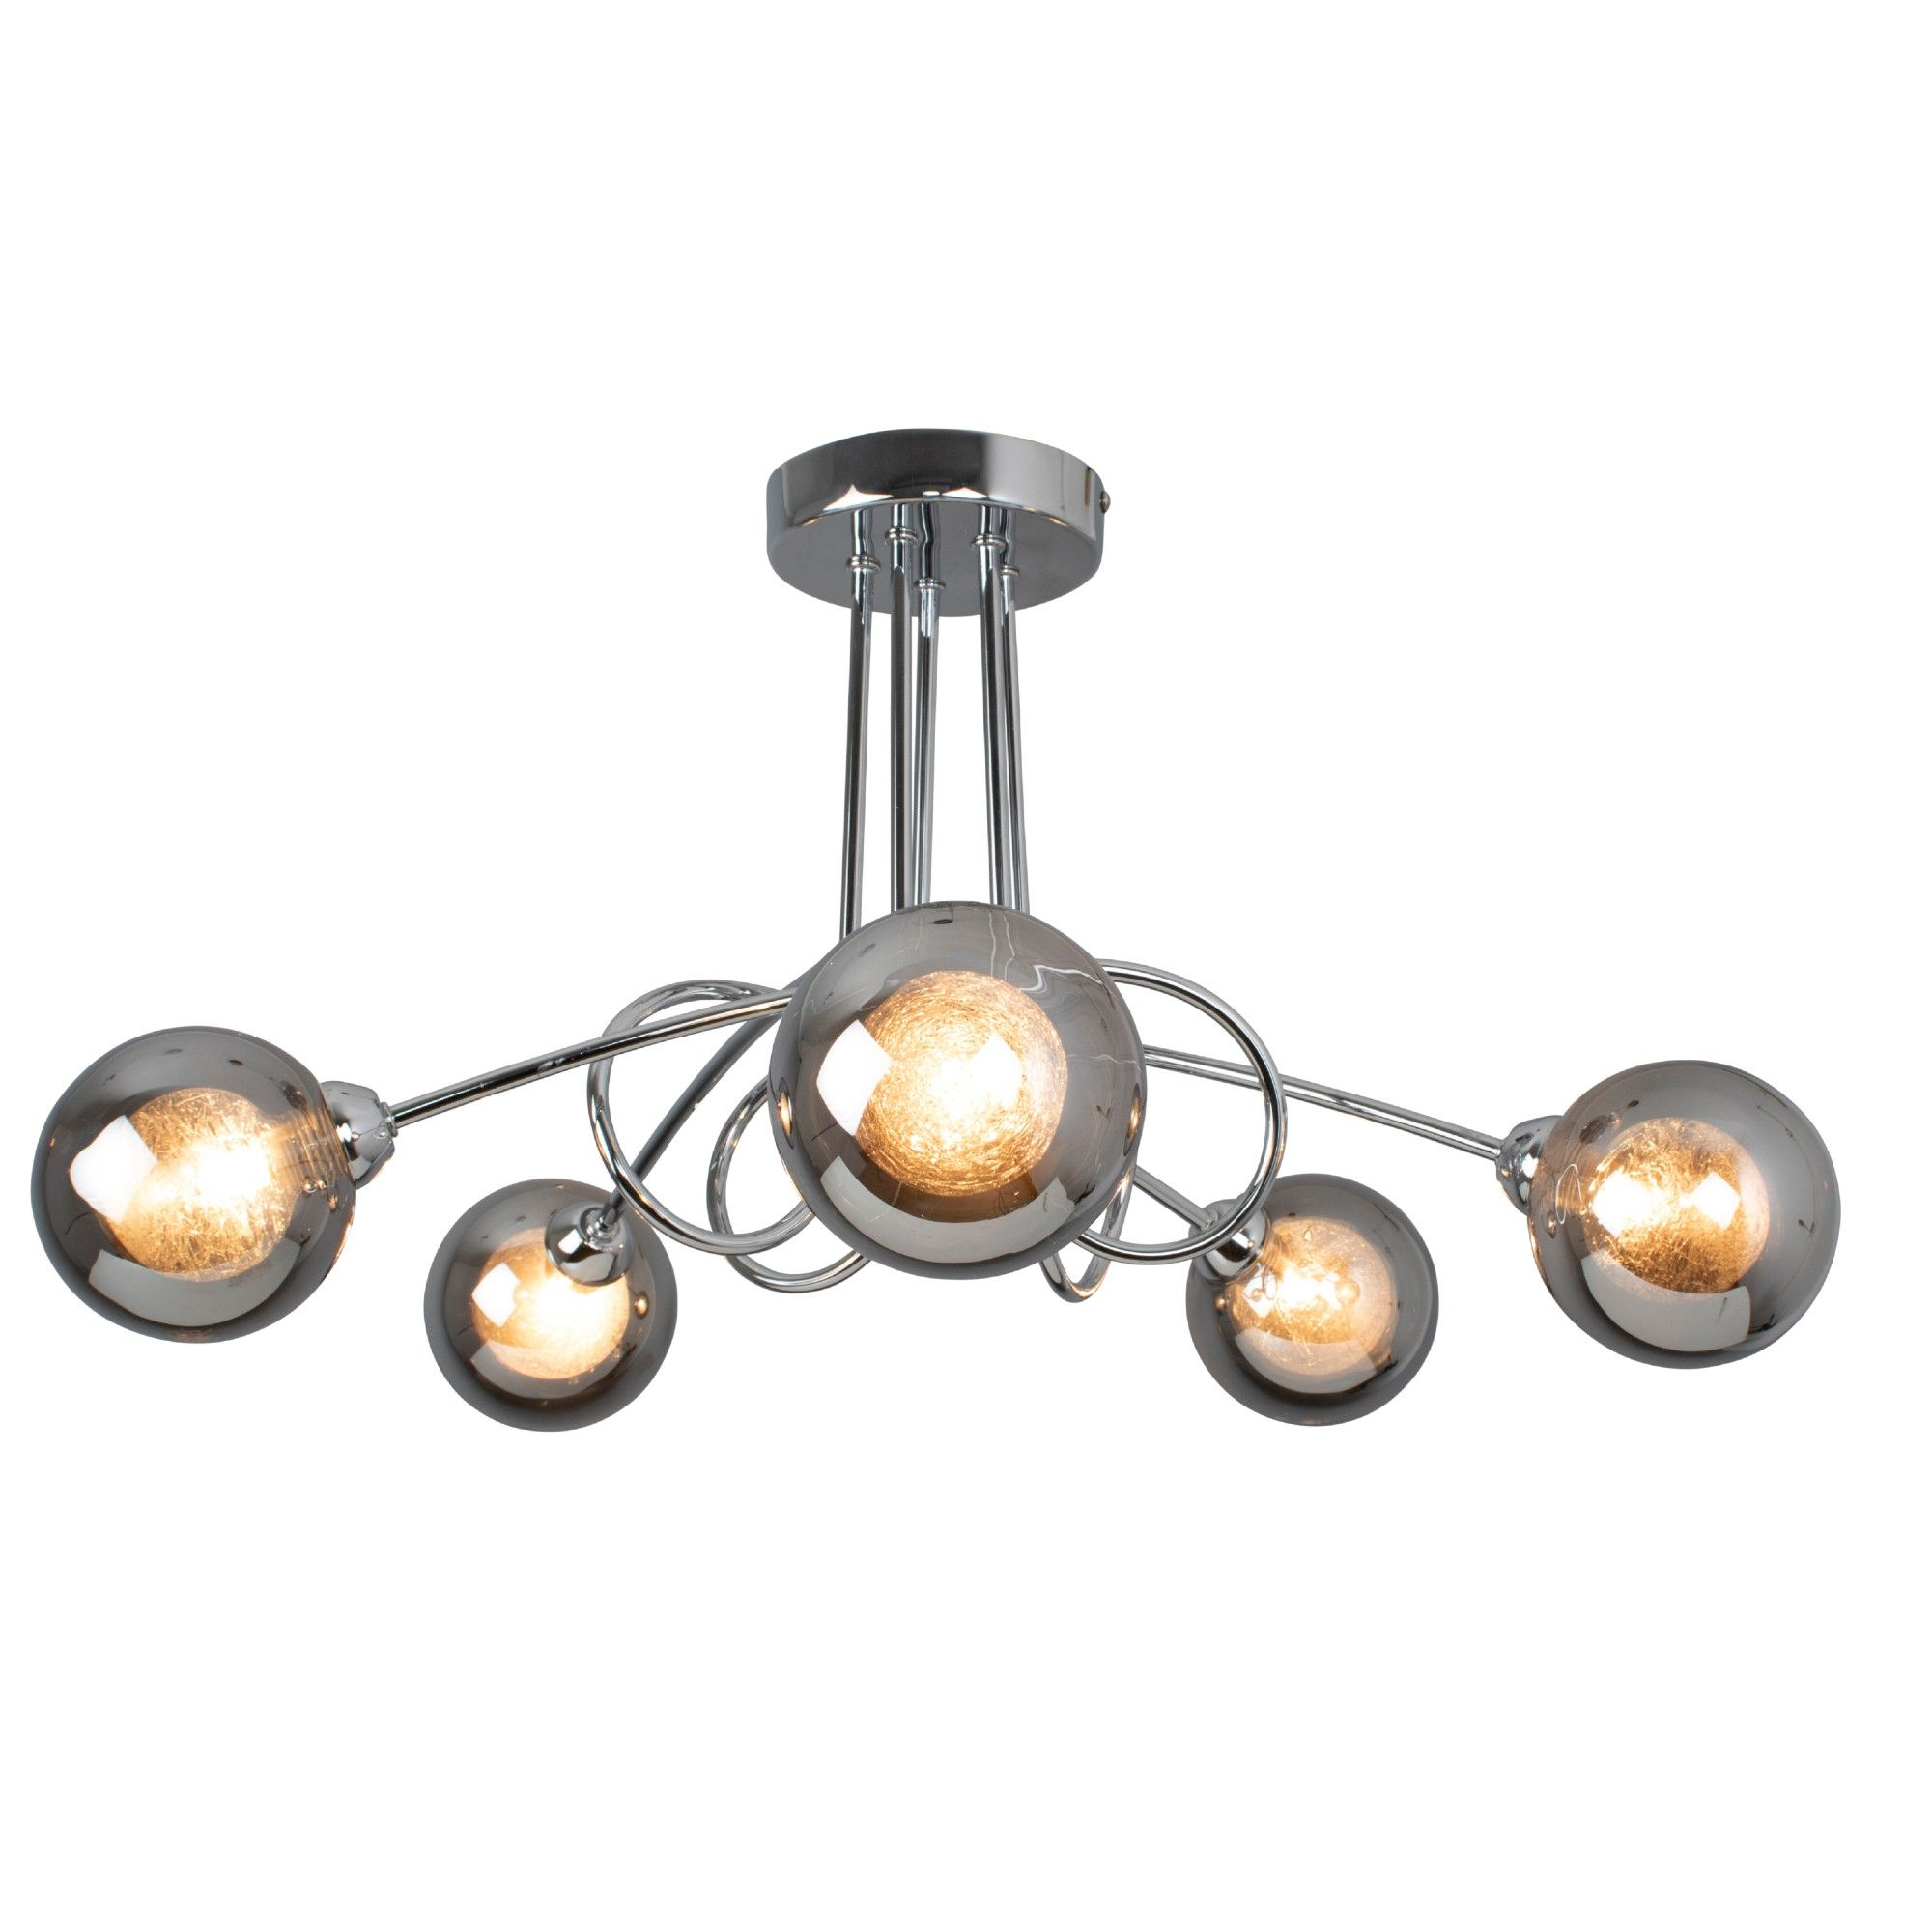 Xena Polished Chrome and Smoked Glass 5 Light Semi Flush Ceiling Light